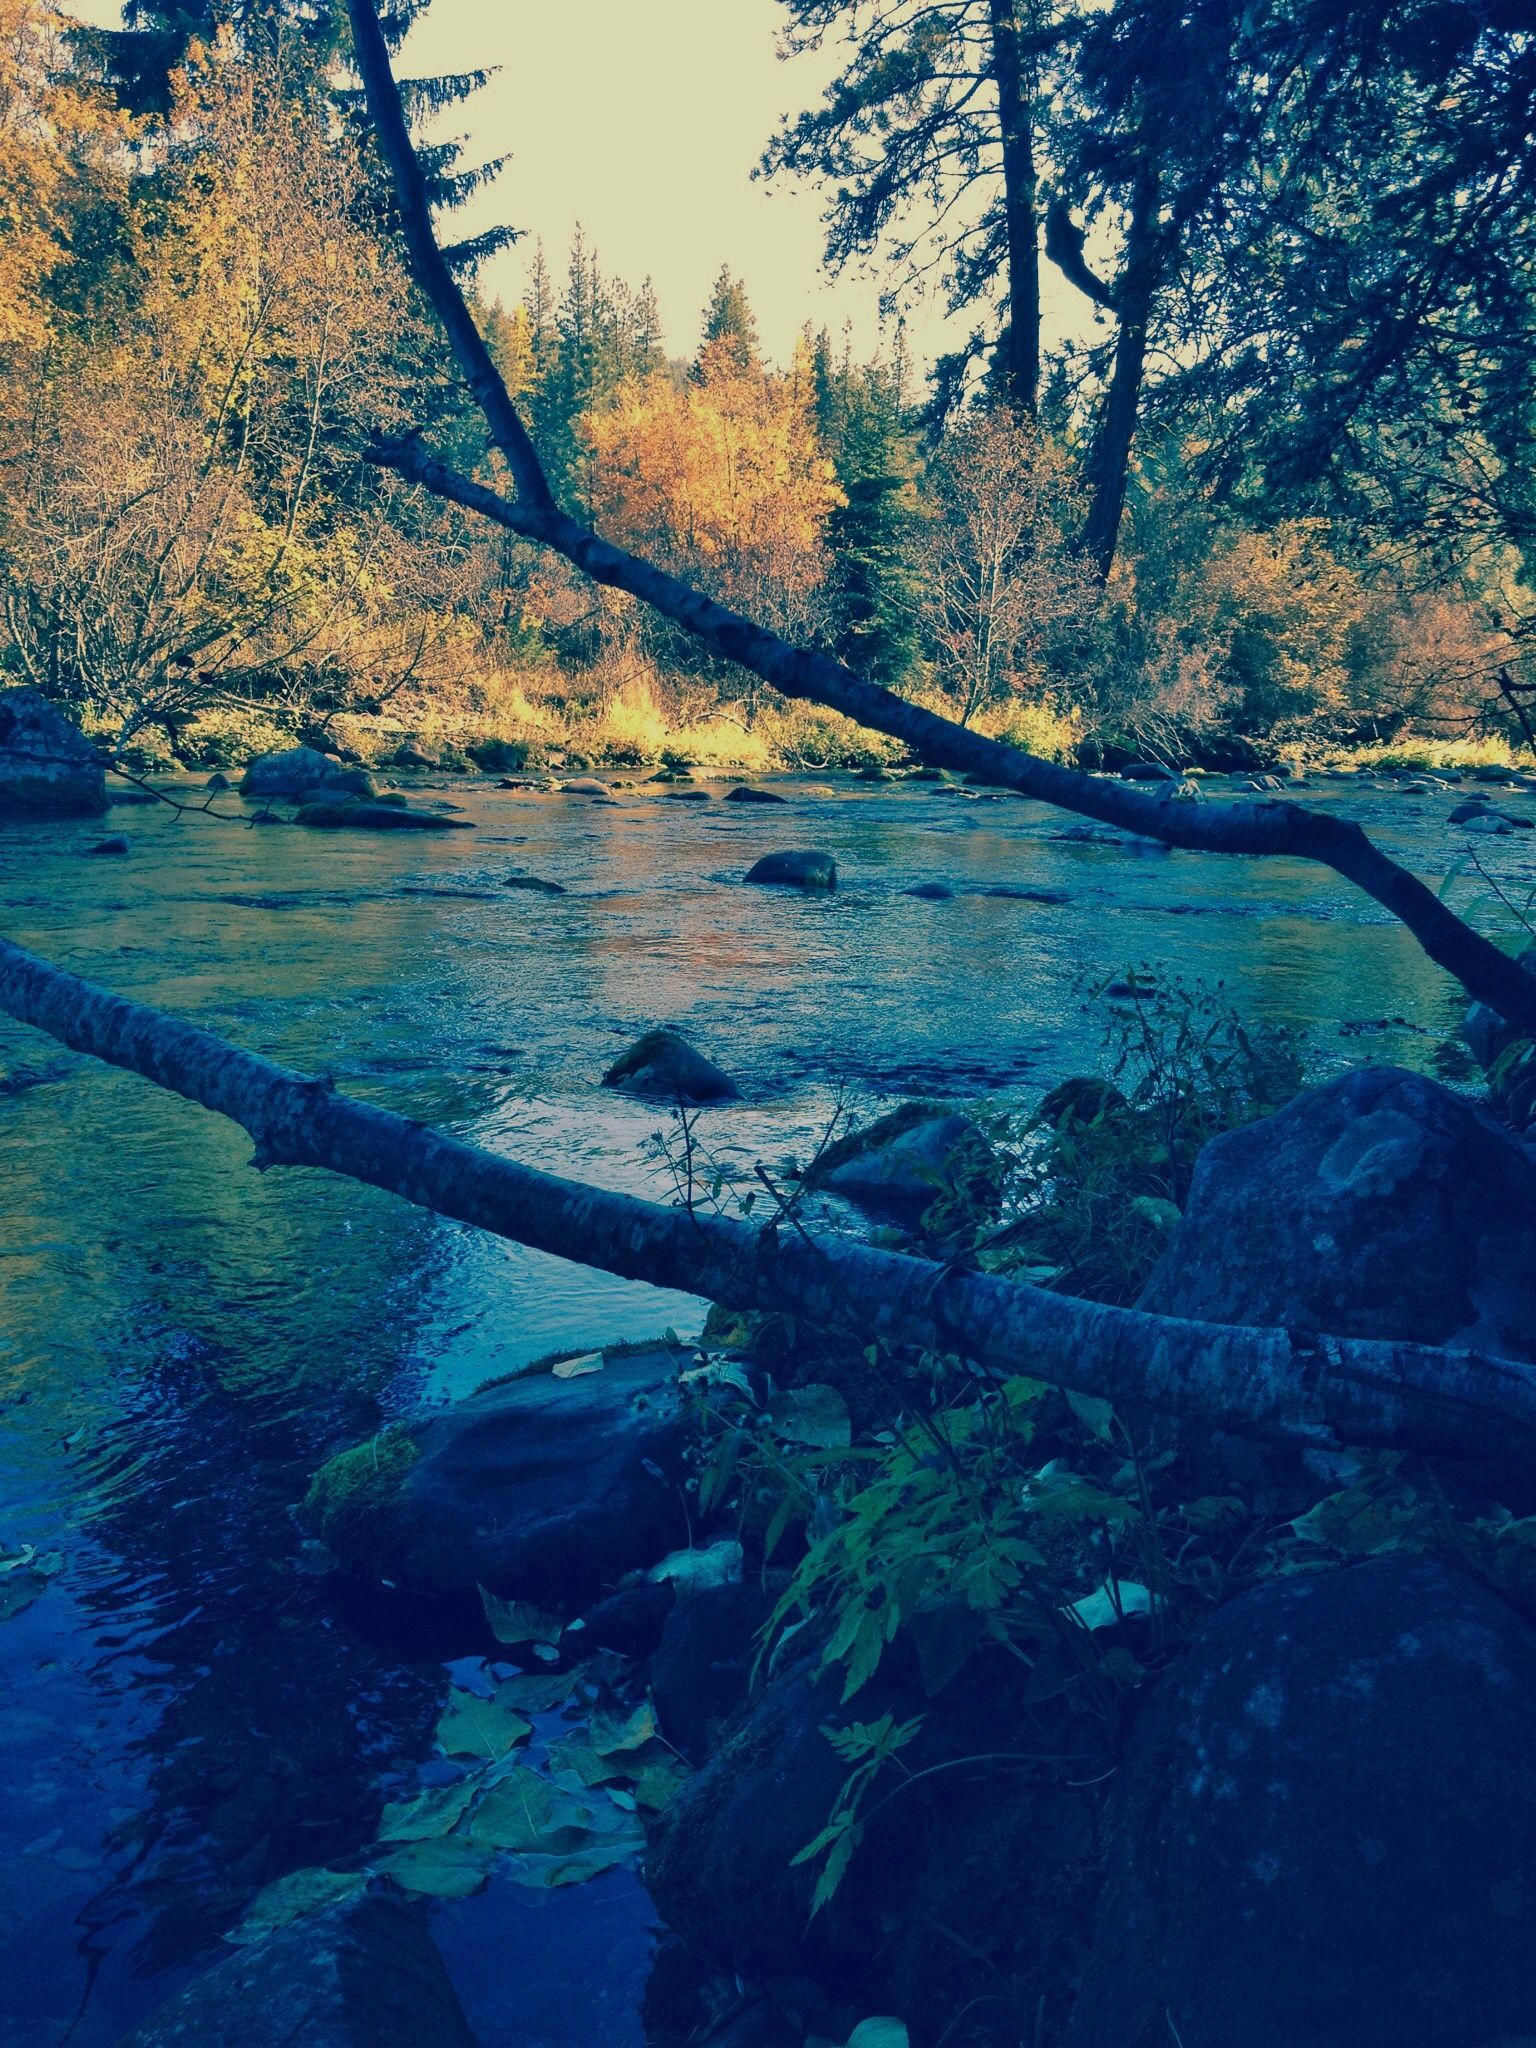 A nice post about the Rattlesnake National Recreation Area in Missoula, MT.